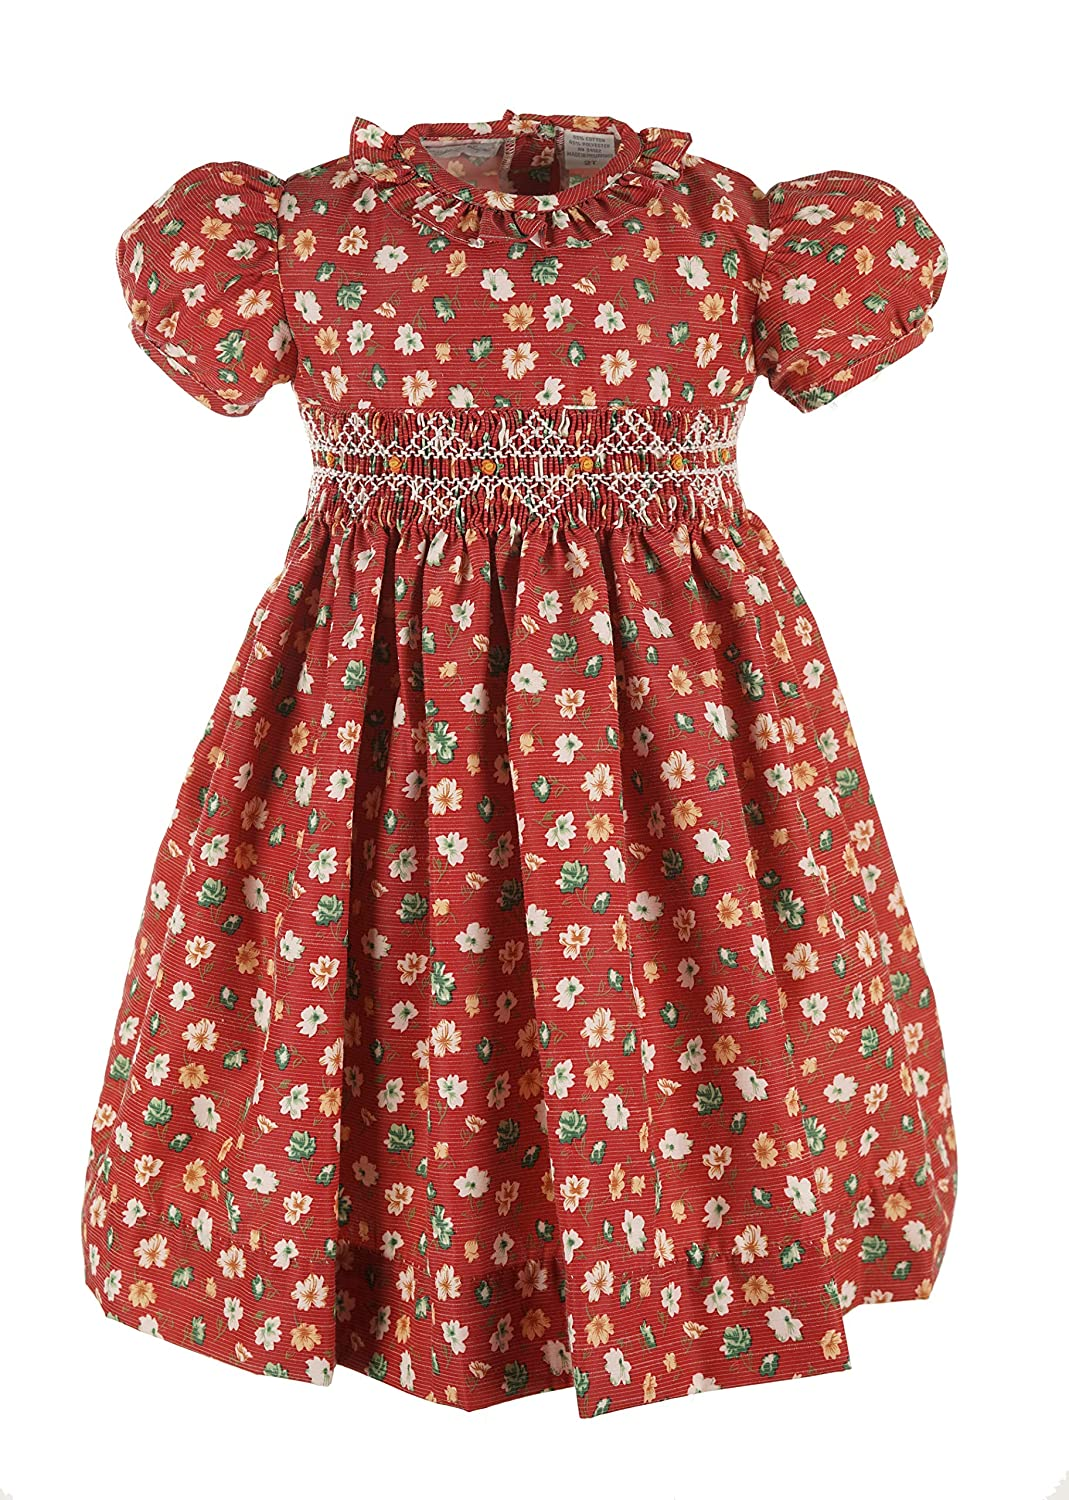 Vintage Style Children's Clothing: Girls, Boys, Baby, Toddler Carriage Boutique Girls Red Waisted Yoke Dress - Floral Winter Short Sleeve $56.00 AT vintagedancer.com